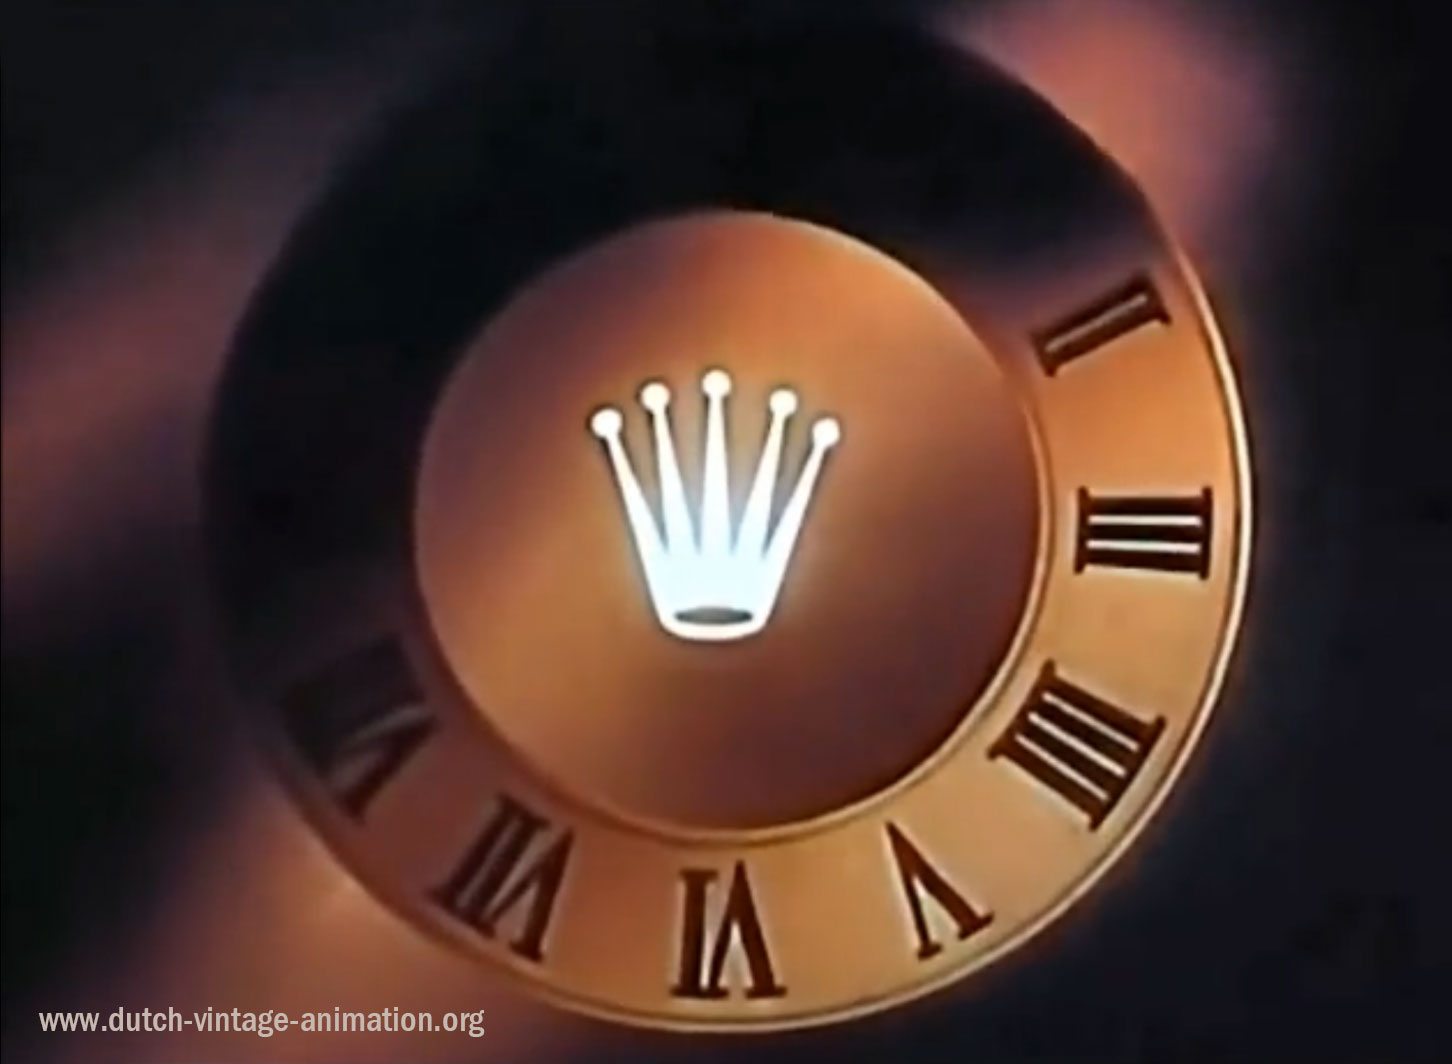 Story Of Time By Rolex (1949)